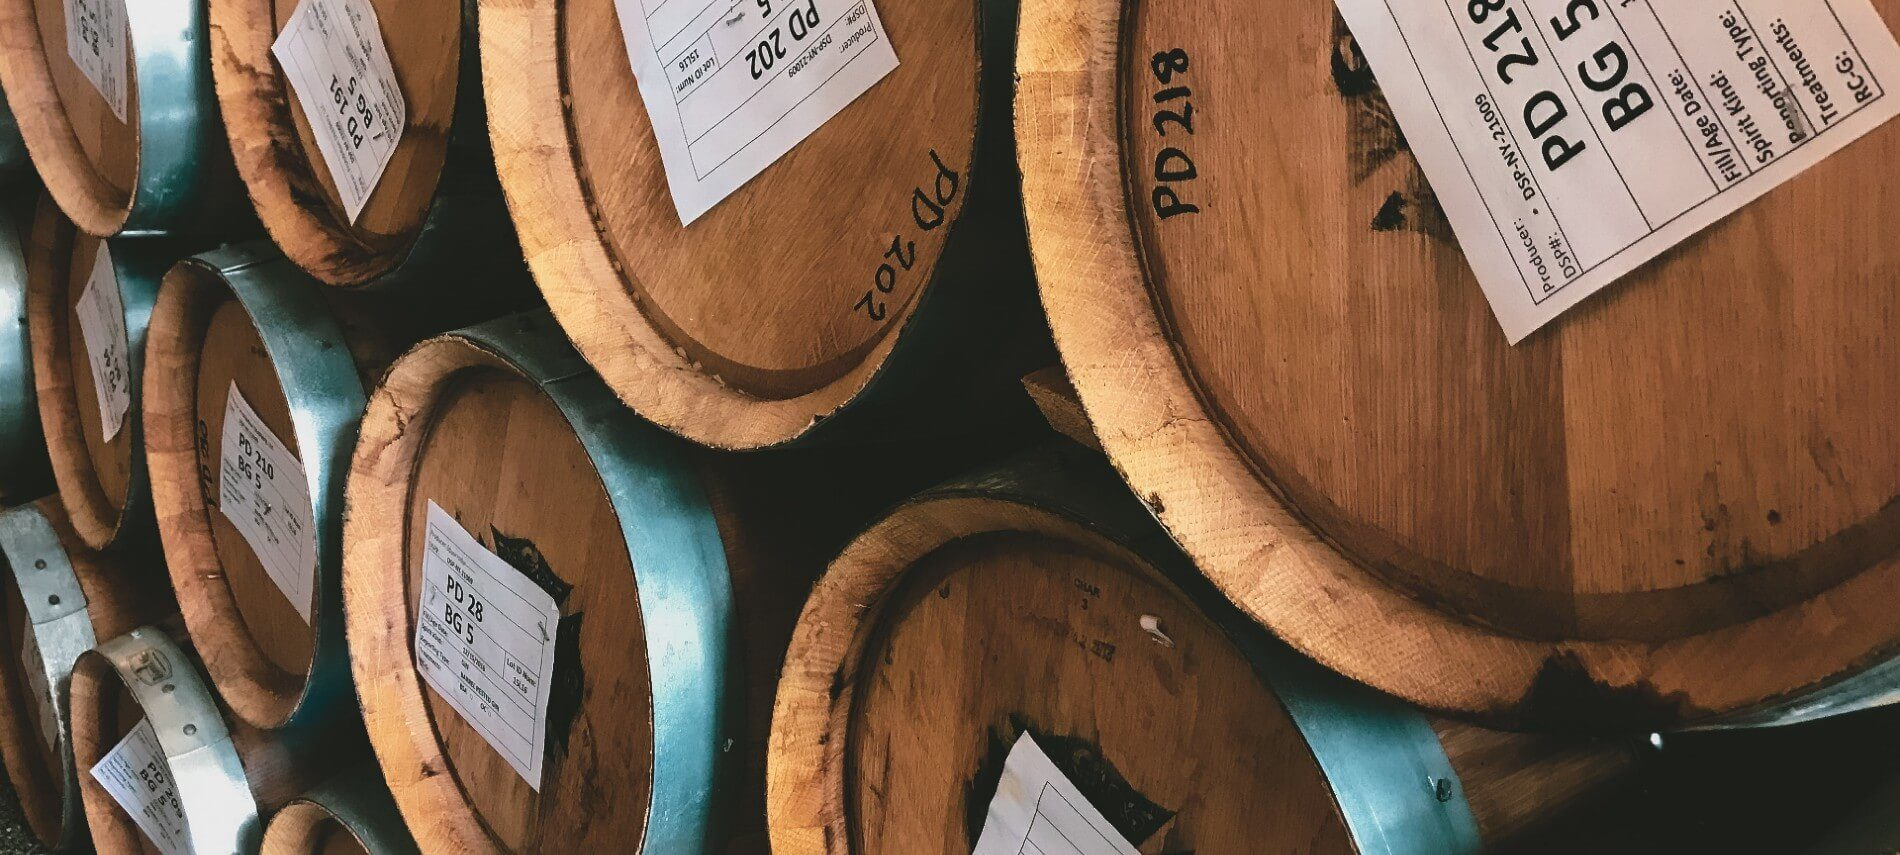 Large round barrels with silver rims and white tags in a distillery stacked on top of each other